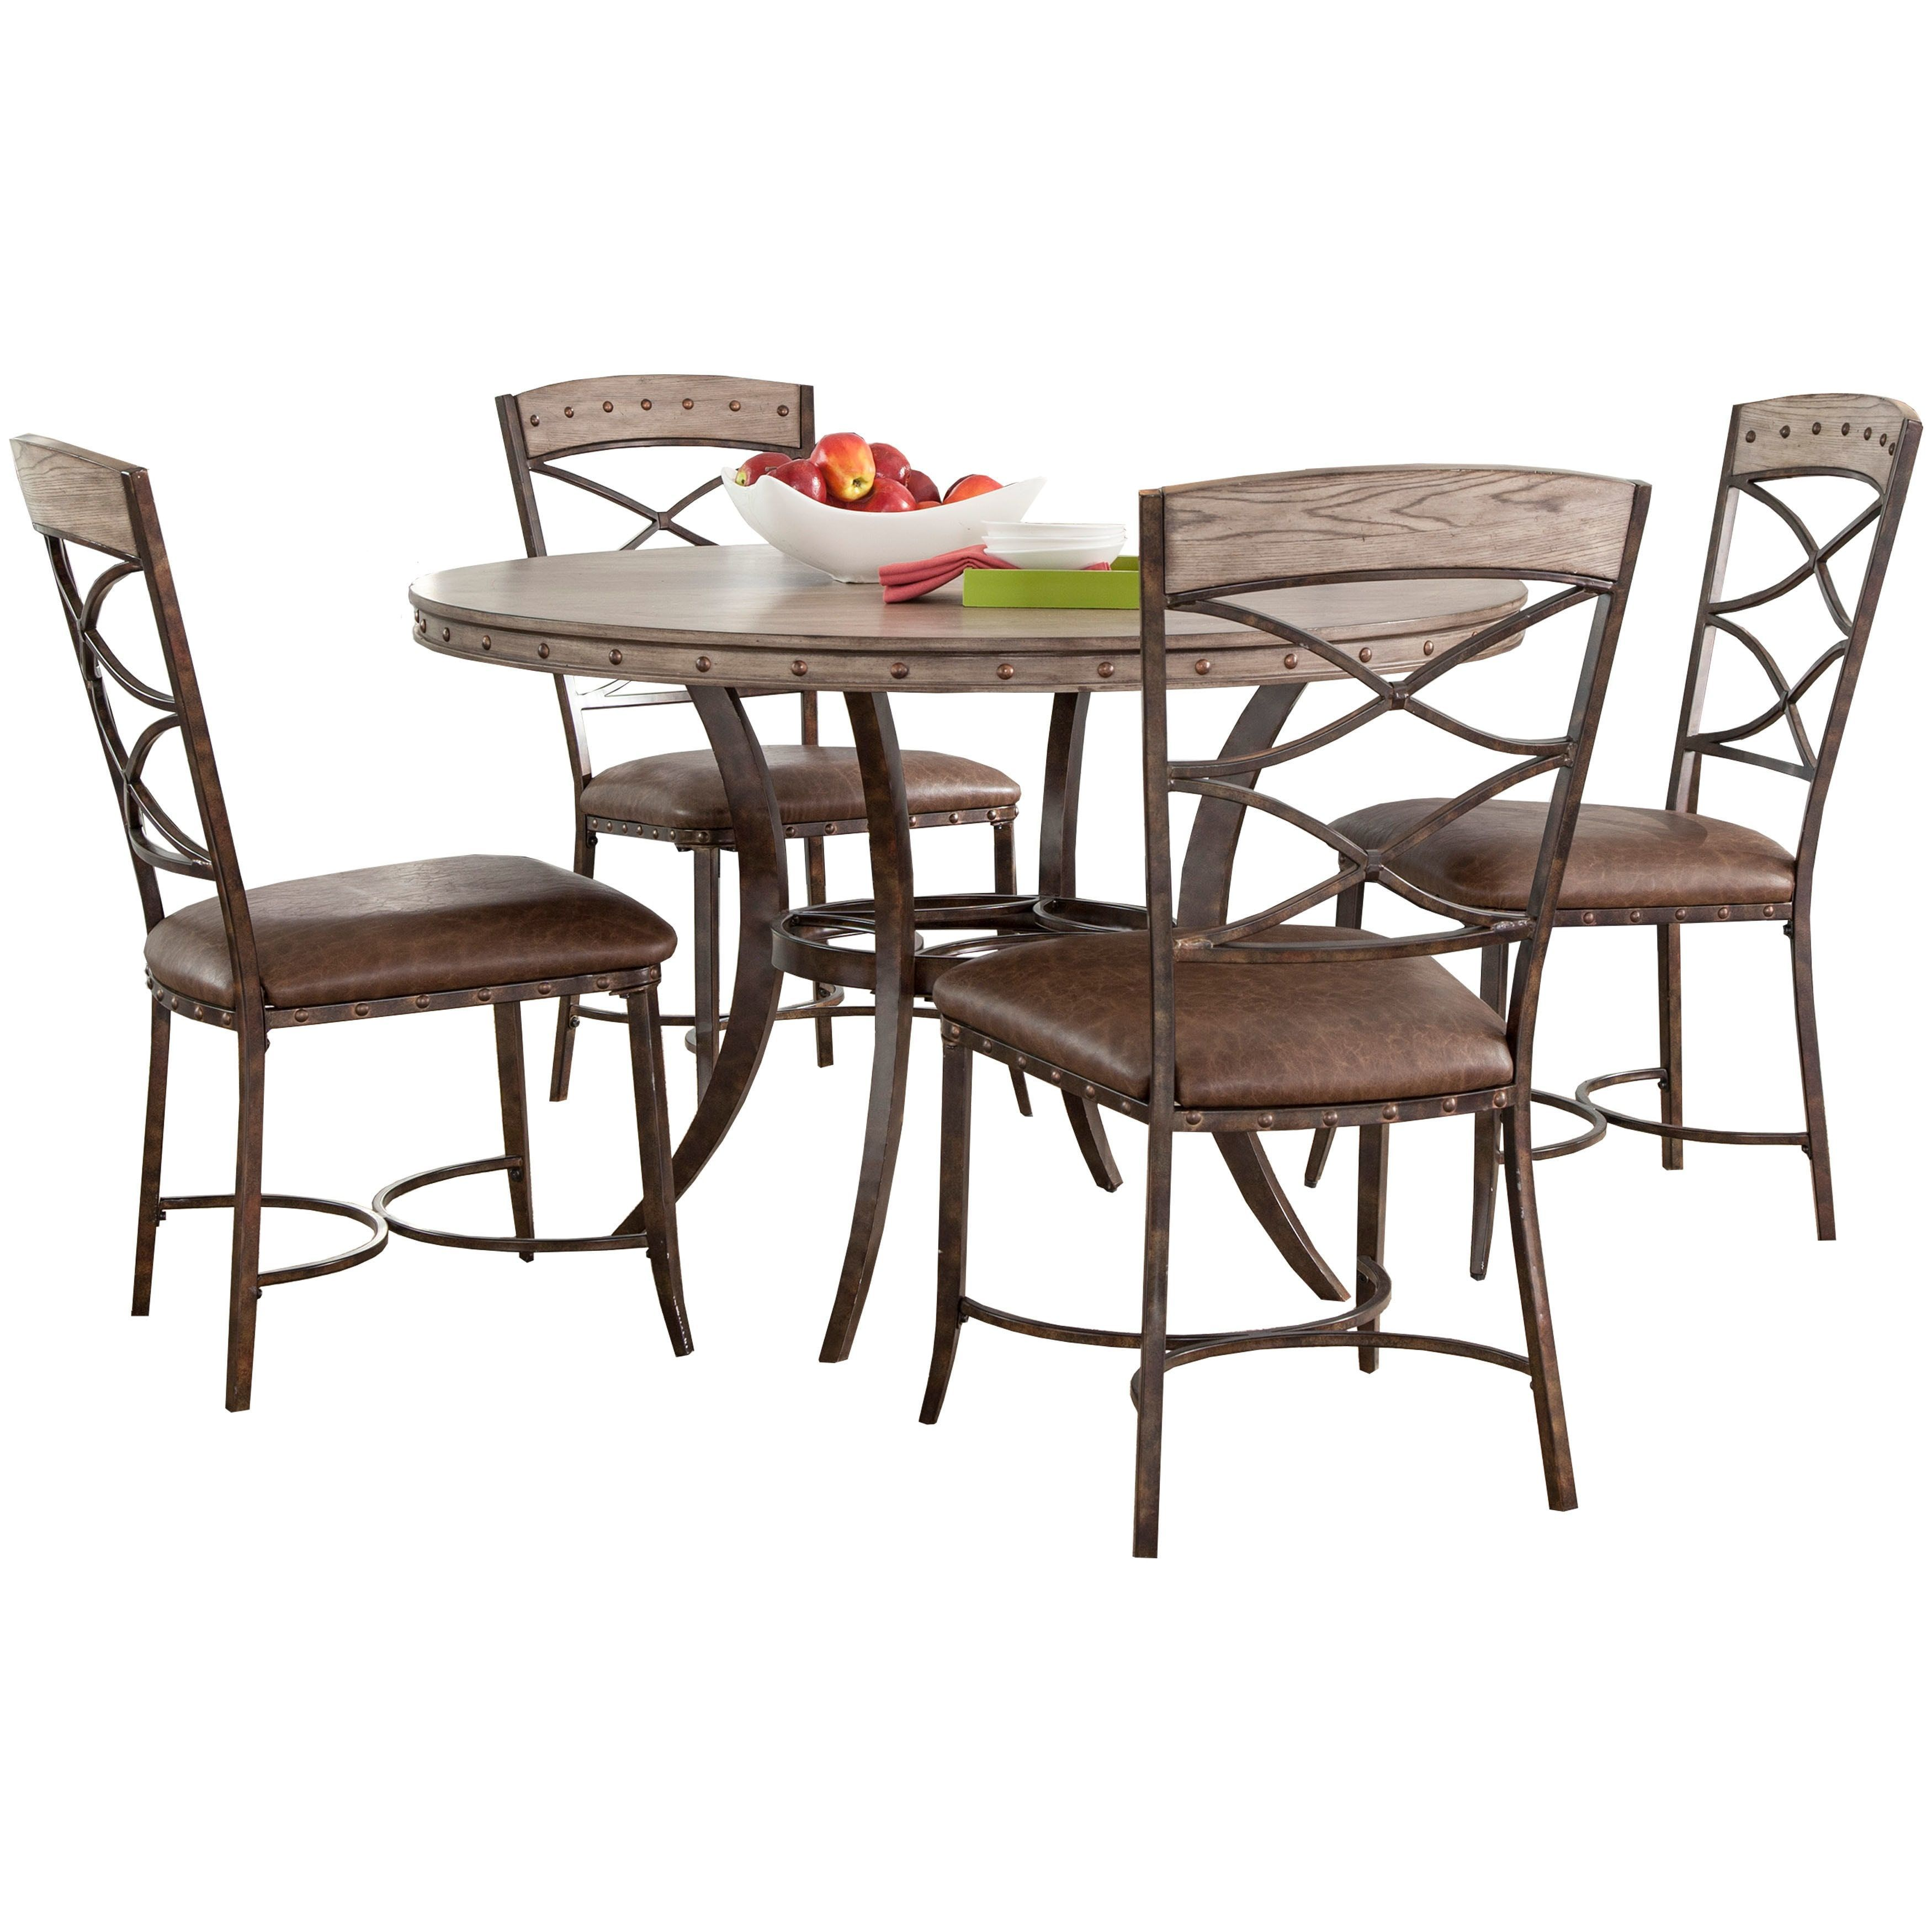 Hillsdale Furniture Emmons 5 Piece Round Dining Set in Washed Finish